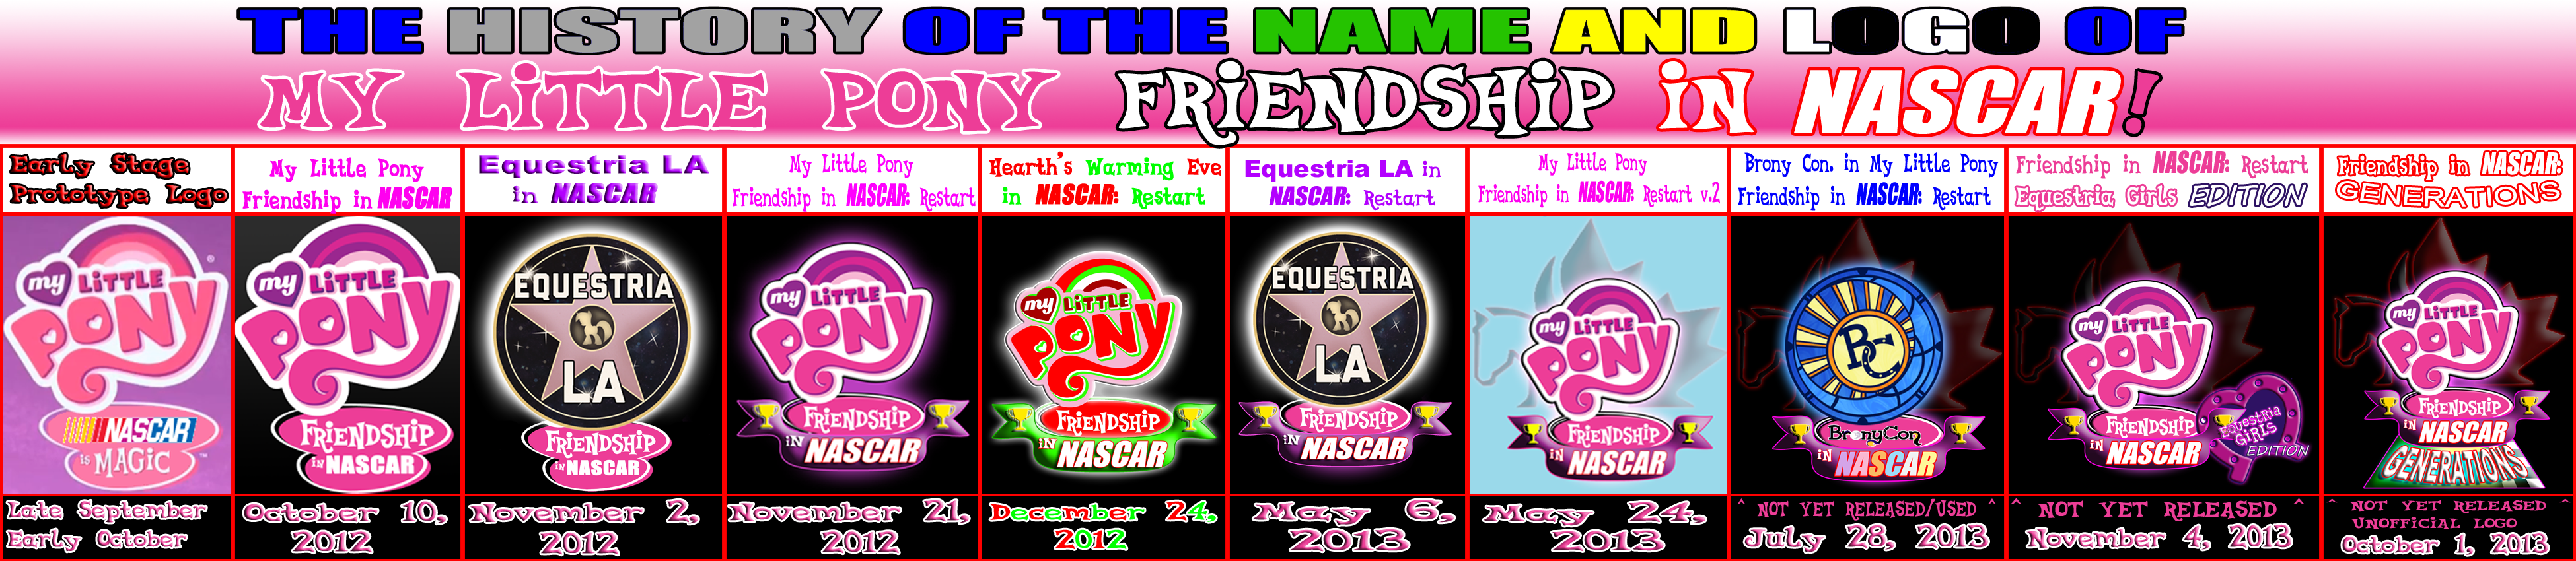 MLP Friendship in NASC... Nascar Logo Png